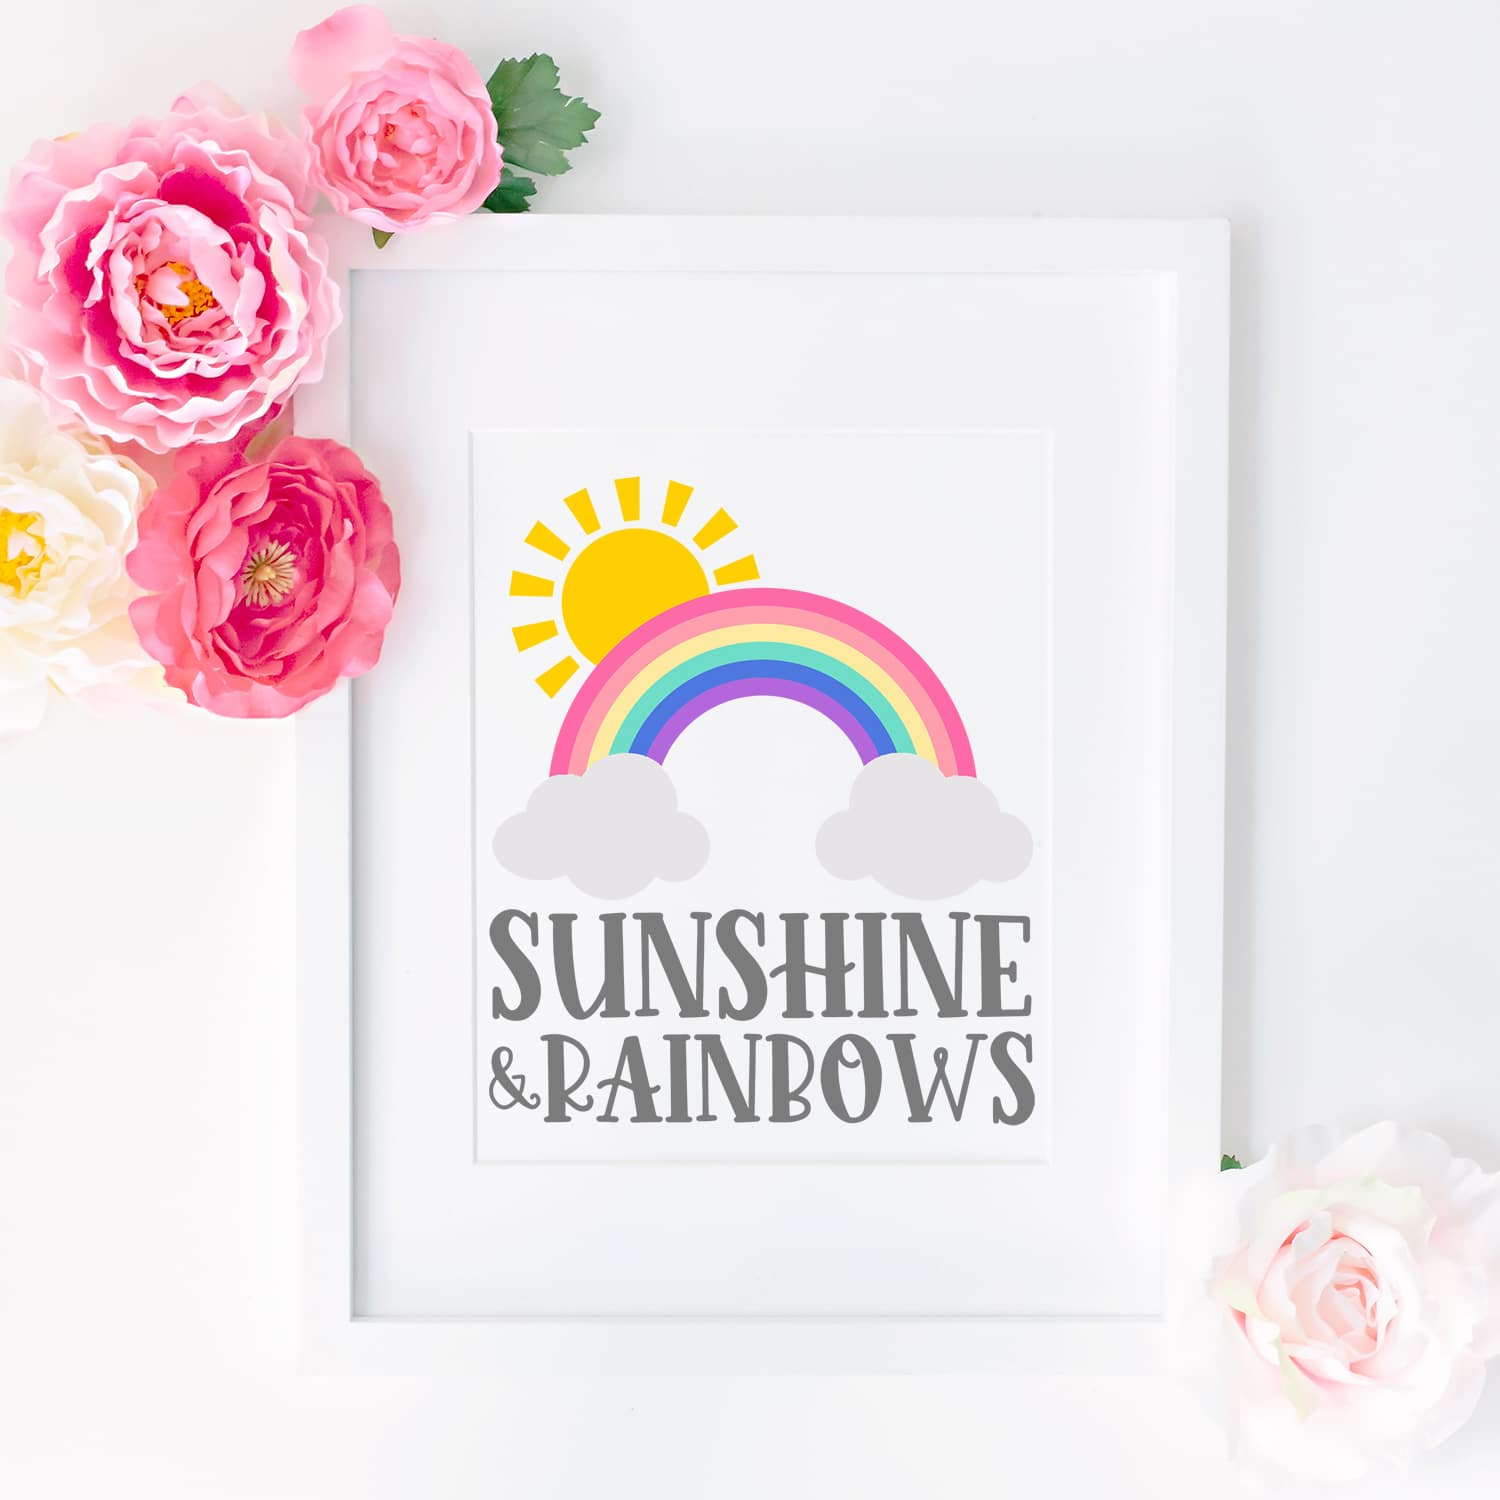 """Sunshine and Rainbows"" artwork in a white frame surrounded by pink and yellow flowers"